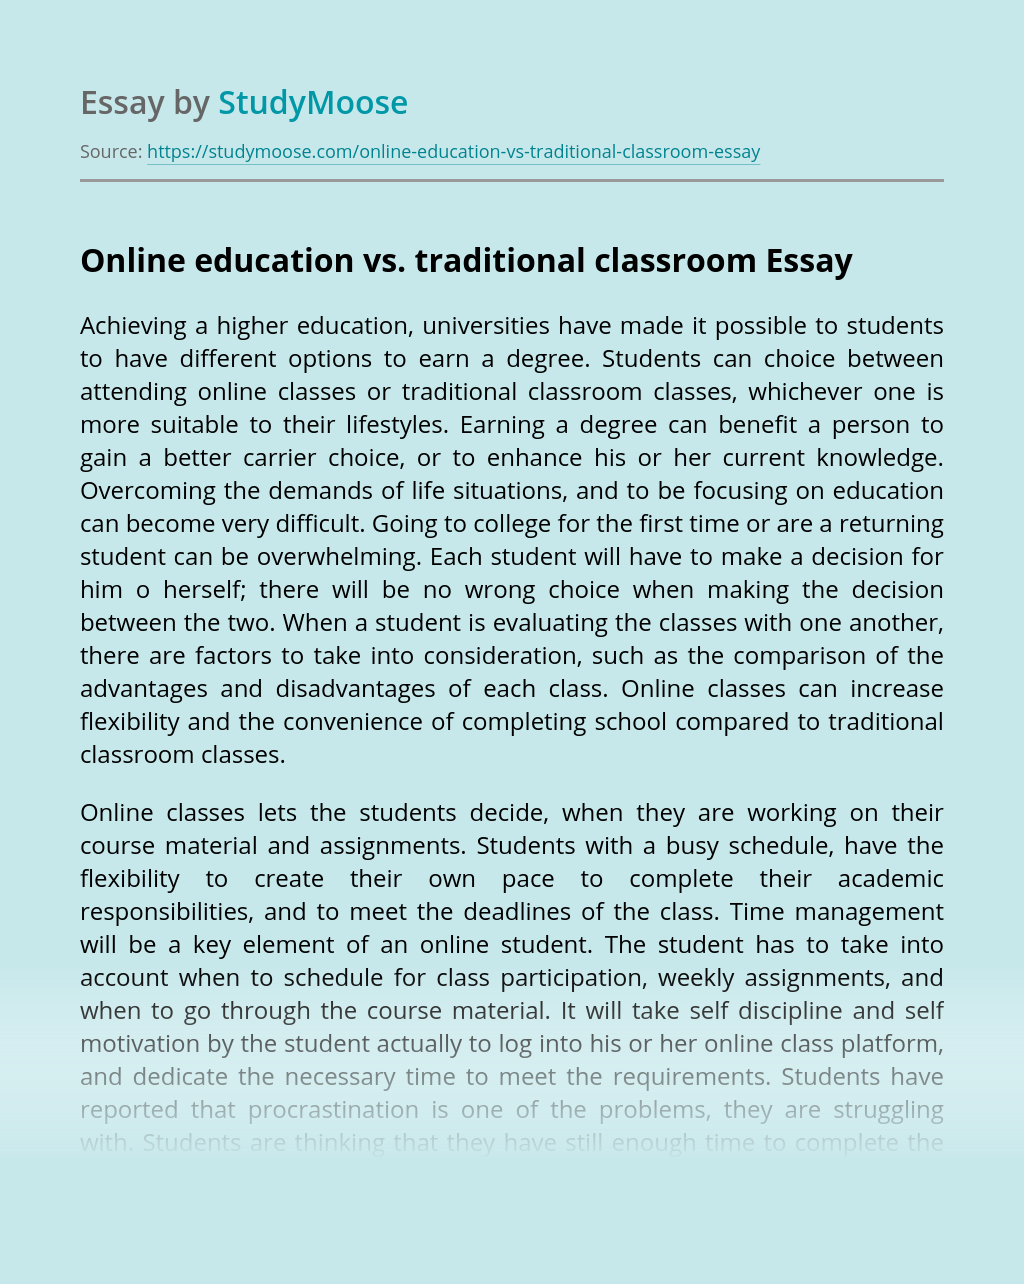 Online education vs. traditional classroom